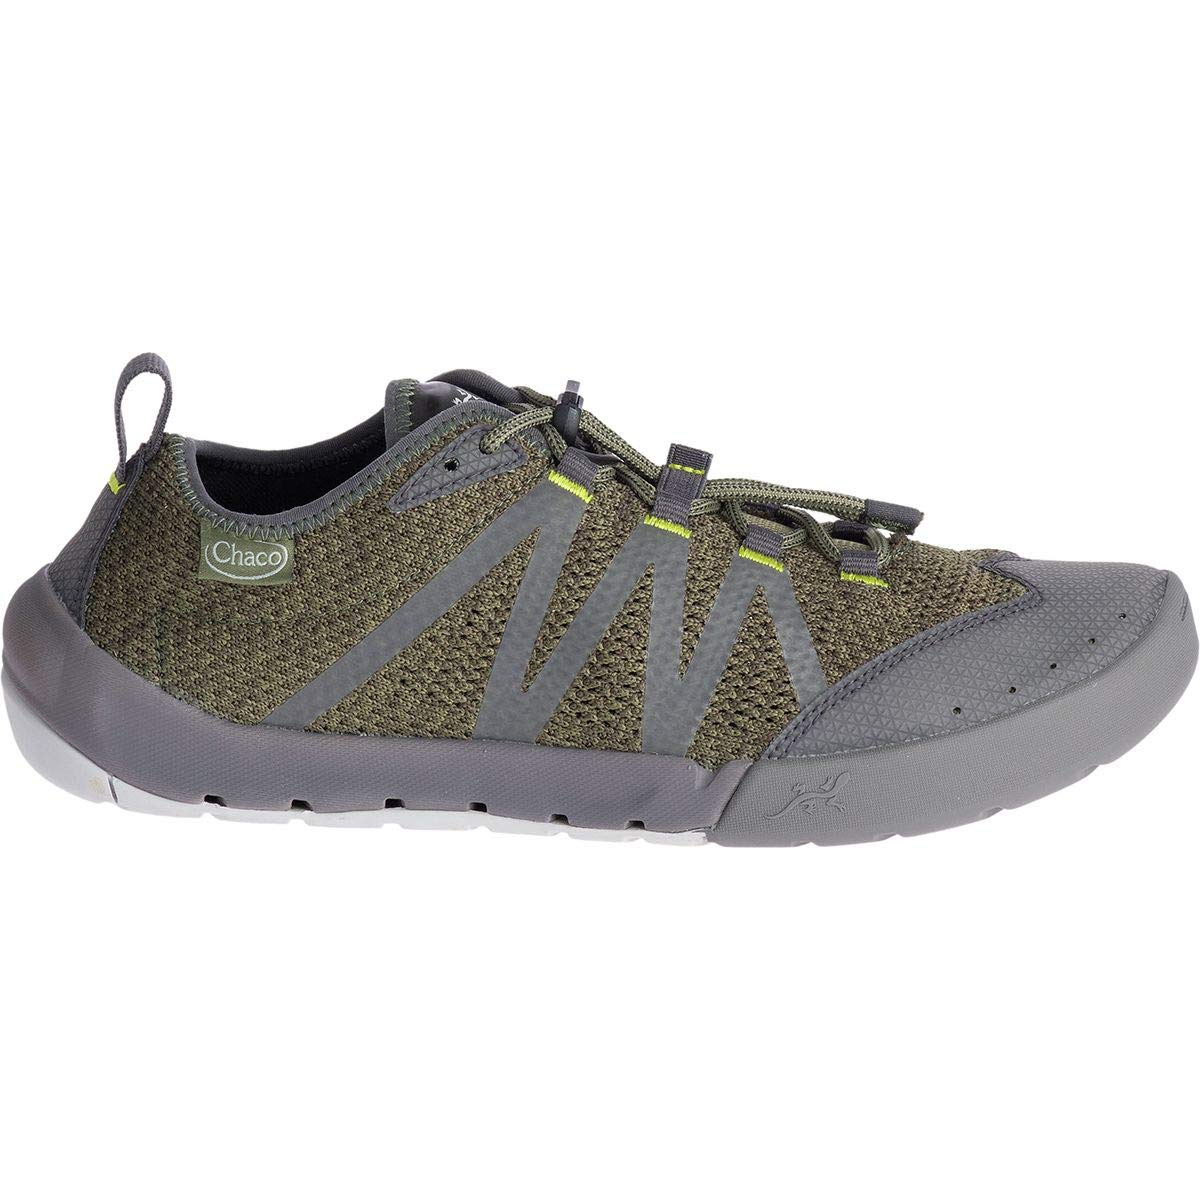 Chaco Torrent Pro Water Shoe - Men's Hunter, 7.0